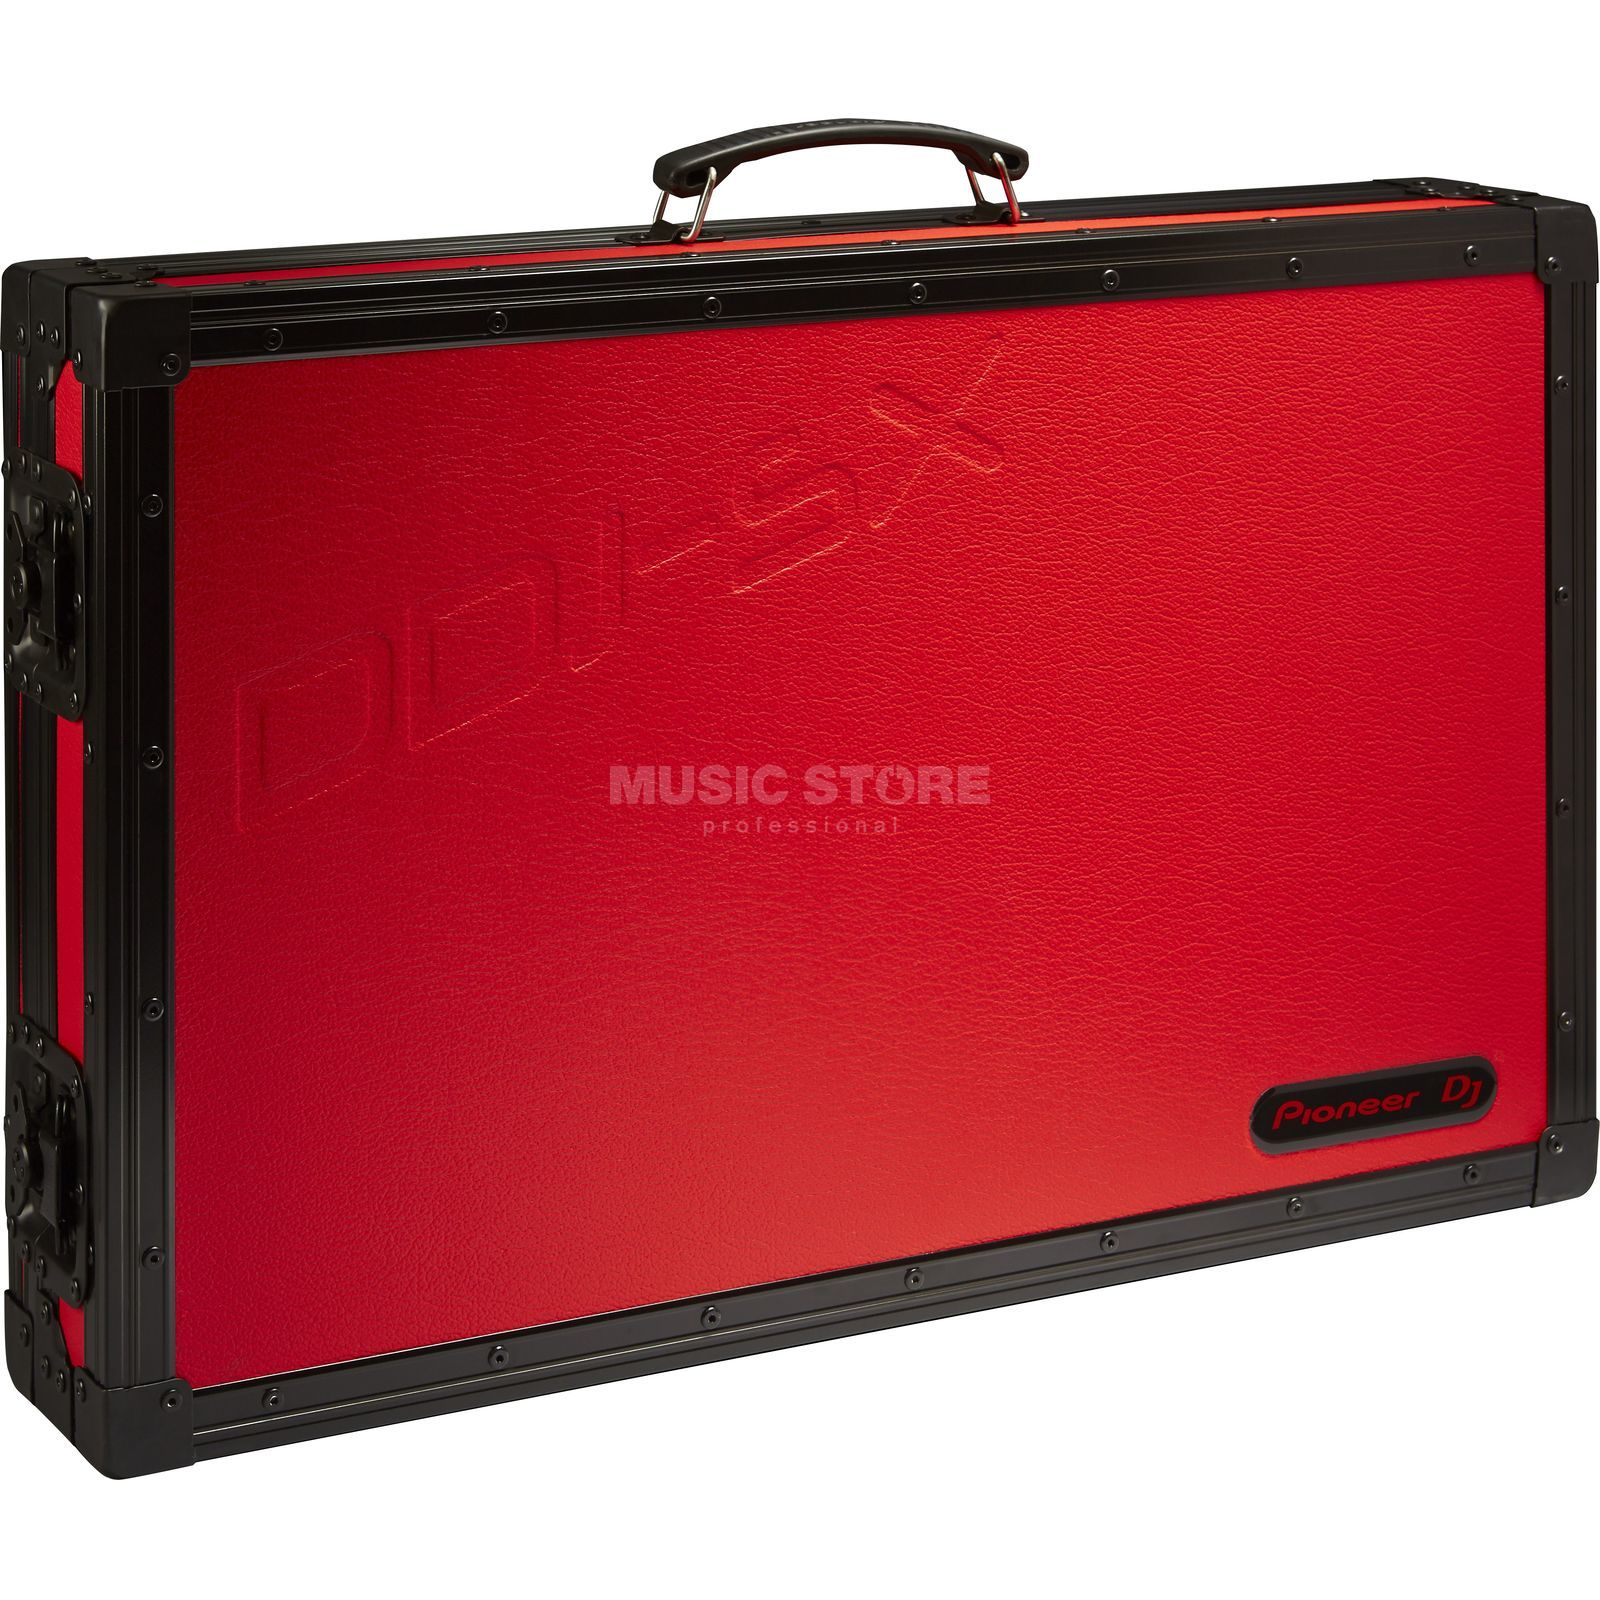 Pioneer DJ PRO-DDJSXFLT Case for DDJ-SX with Laptop Mount Product Image